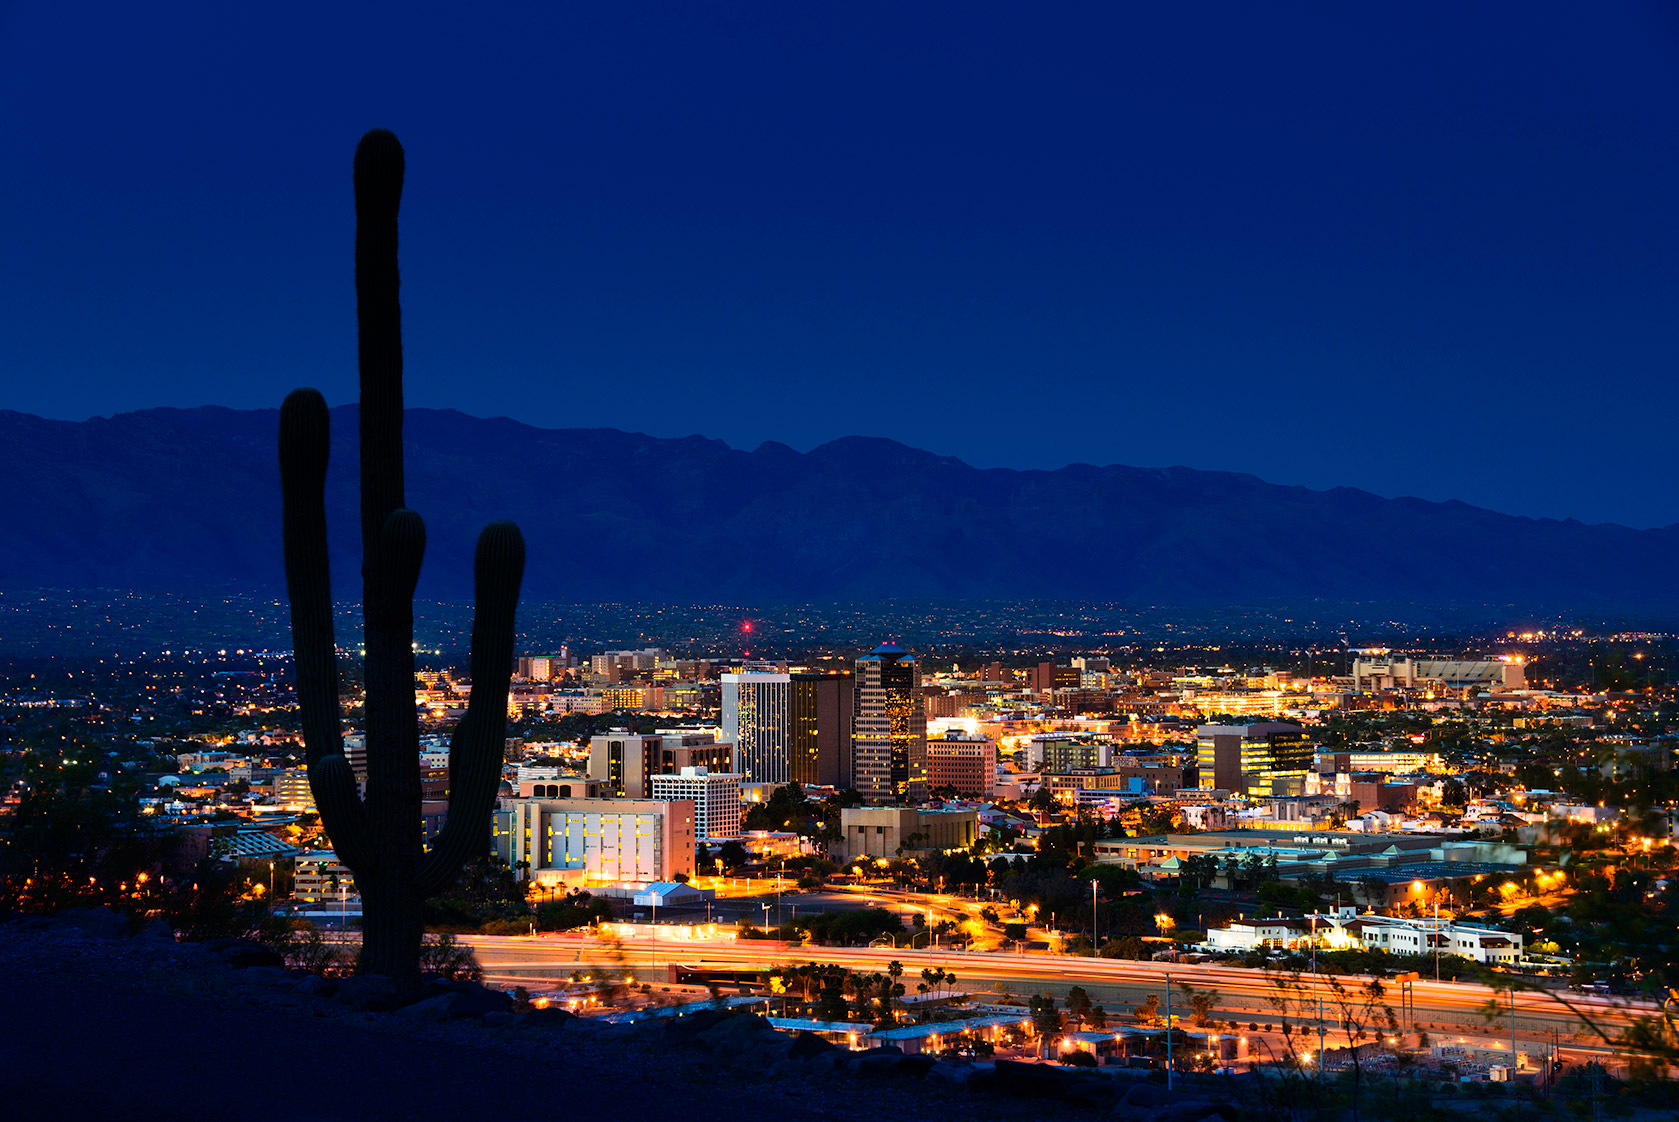 Arizona city view at night.